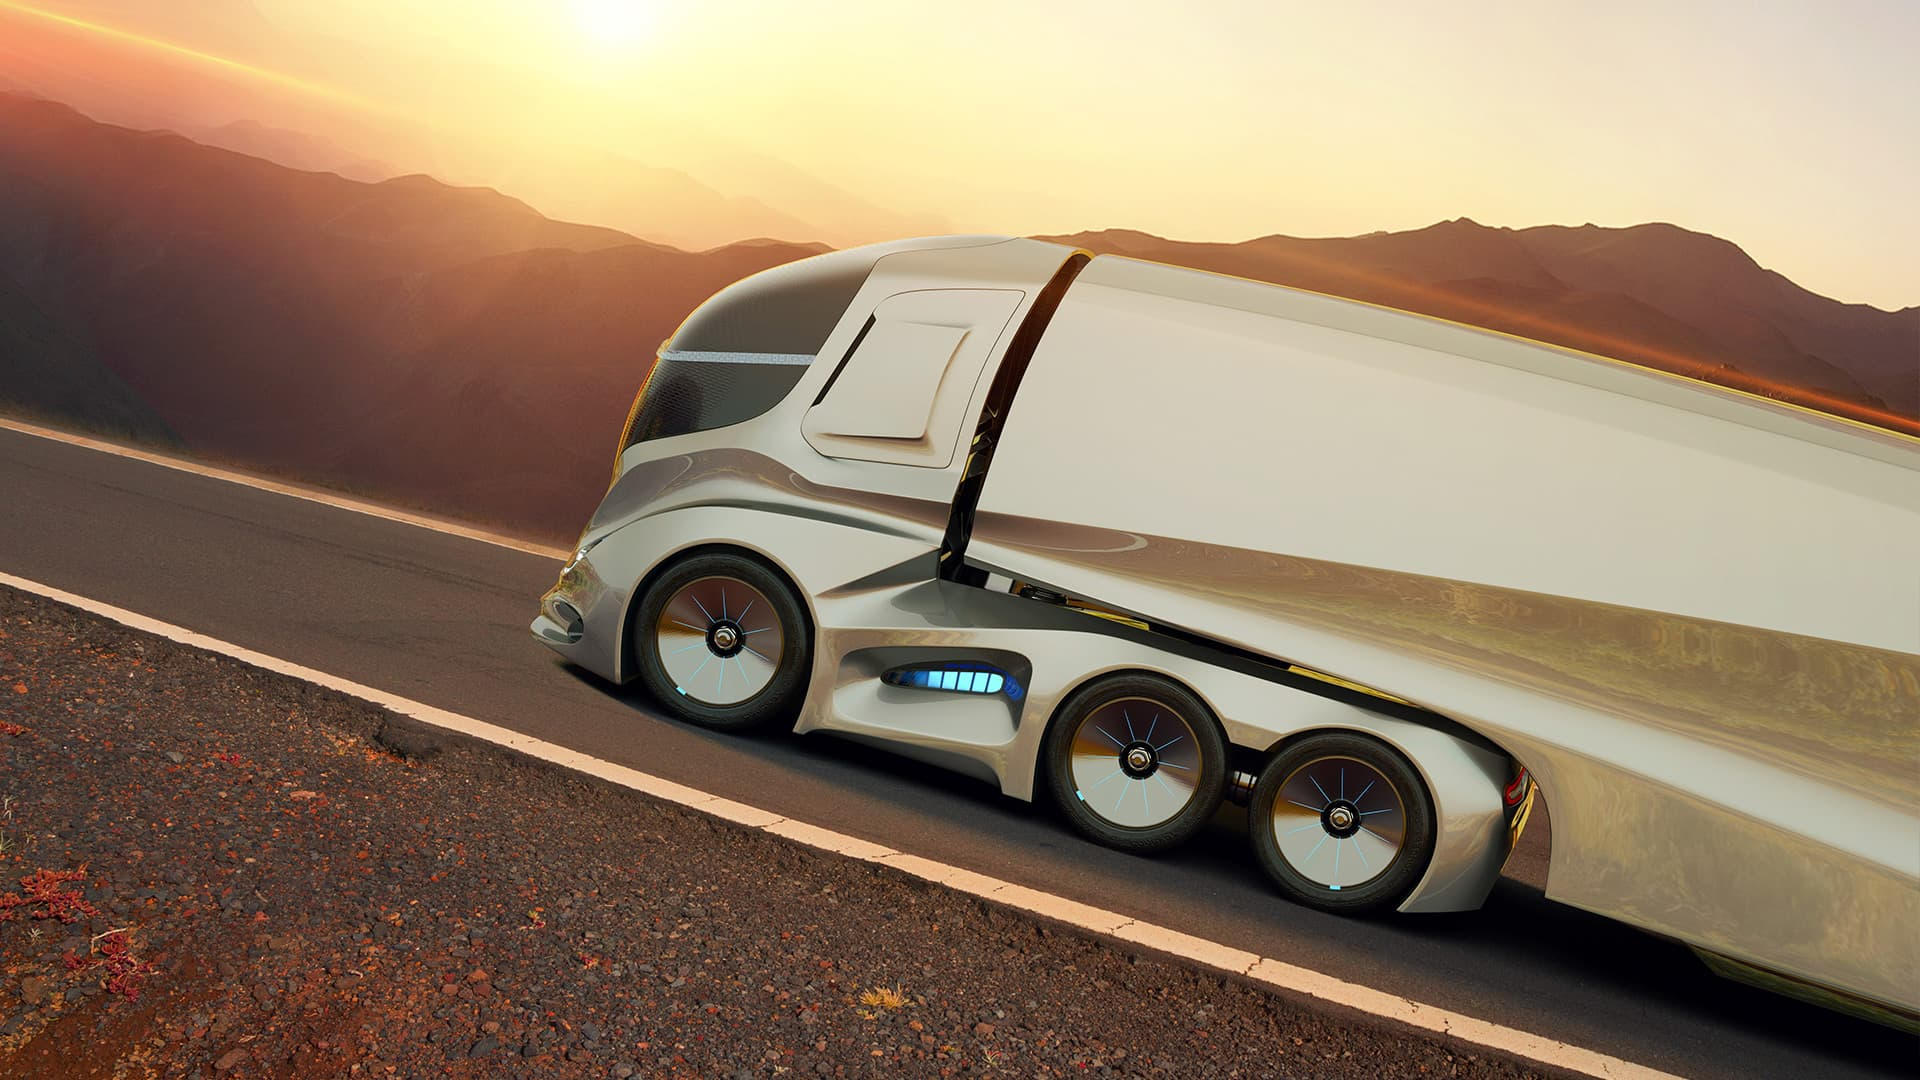 Coming Soon to a Highway Near You: Autonomous Trucks